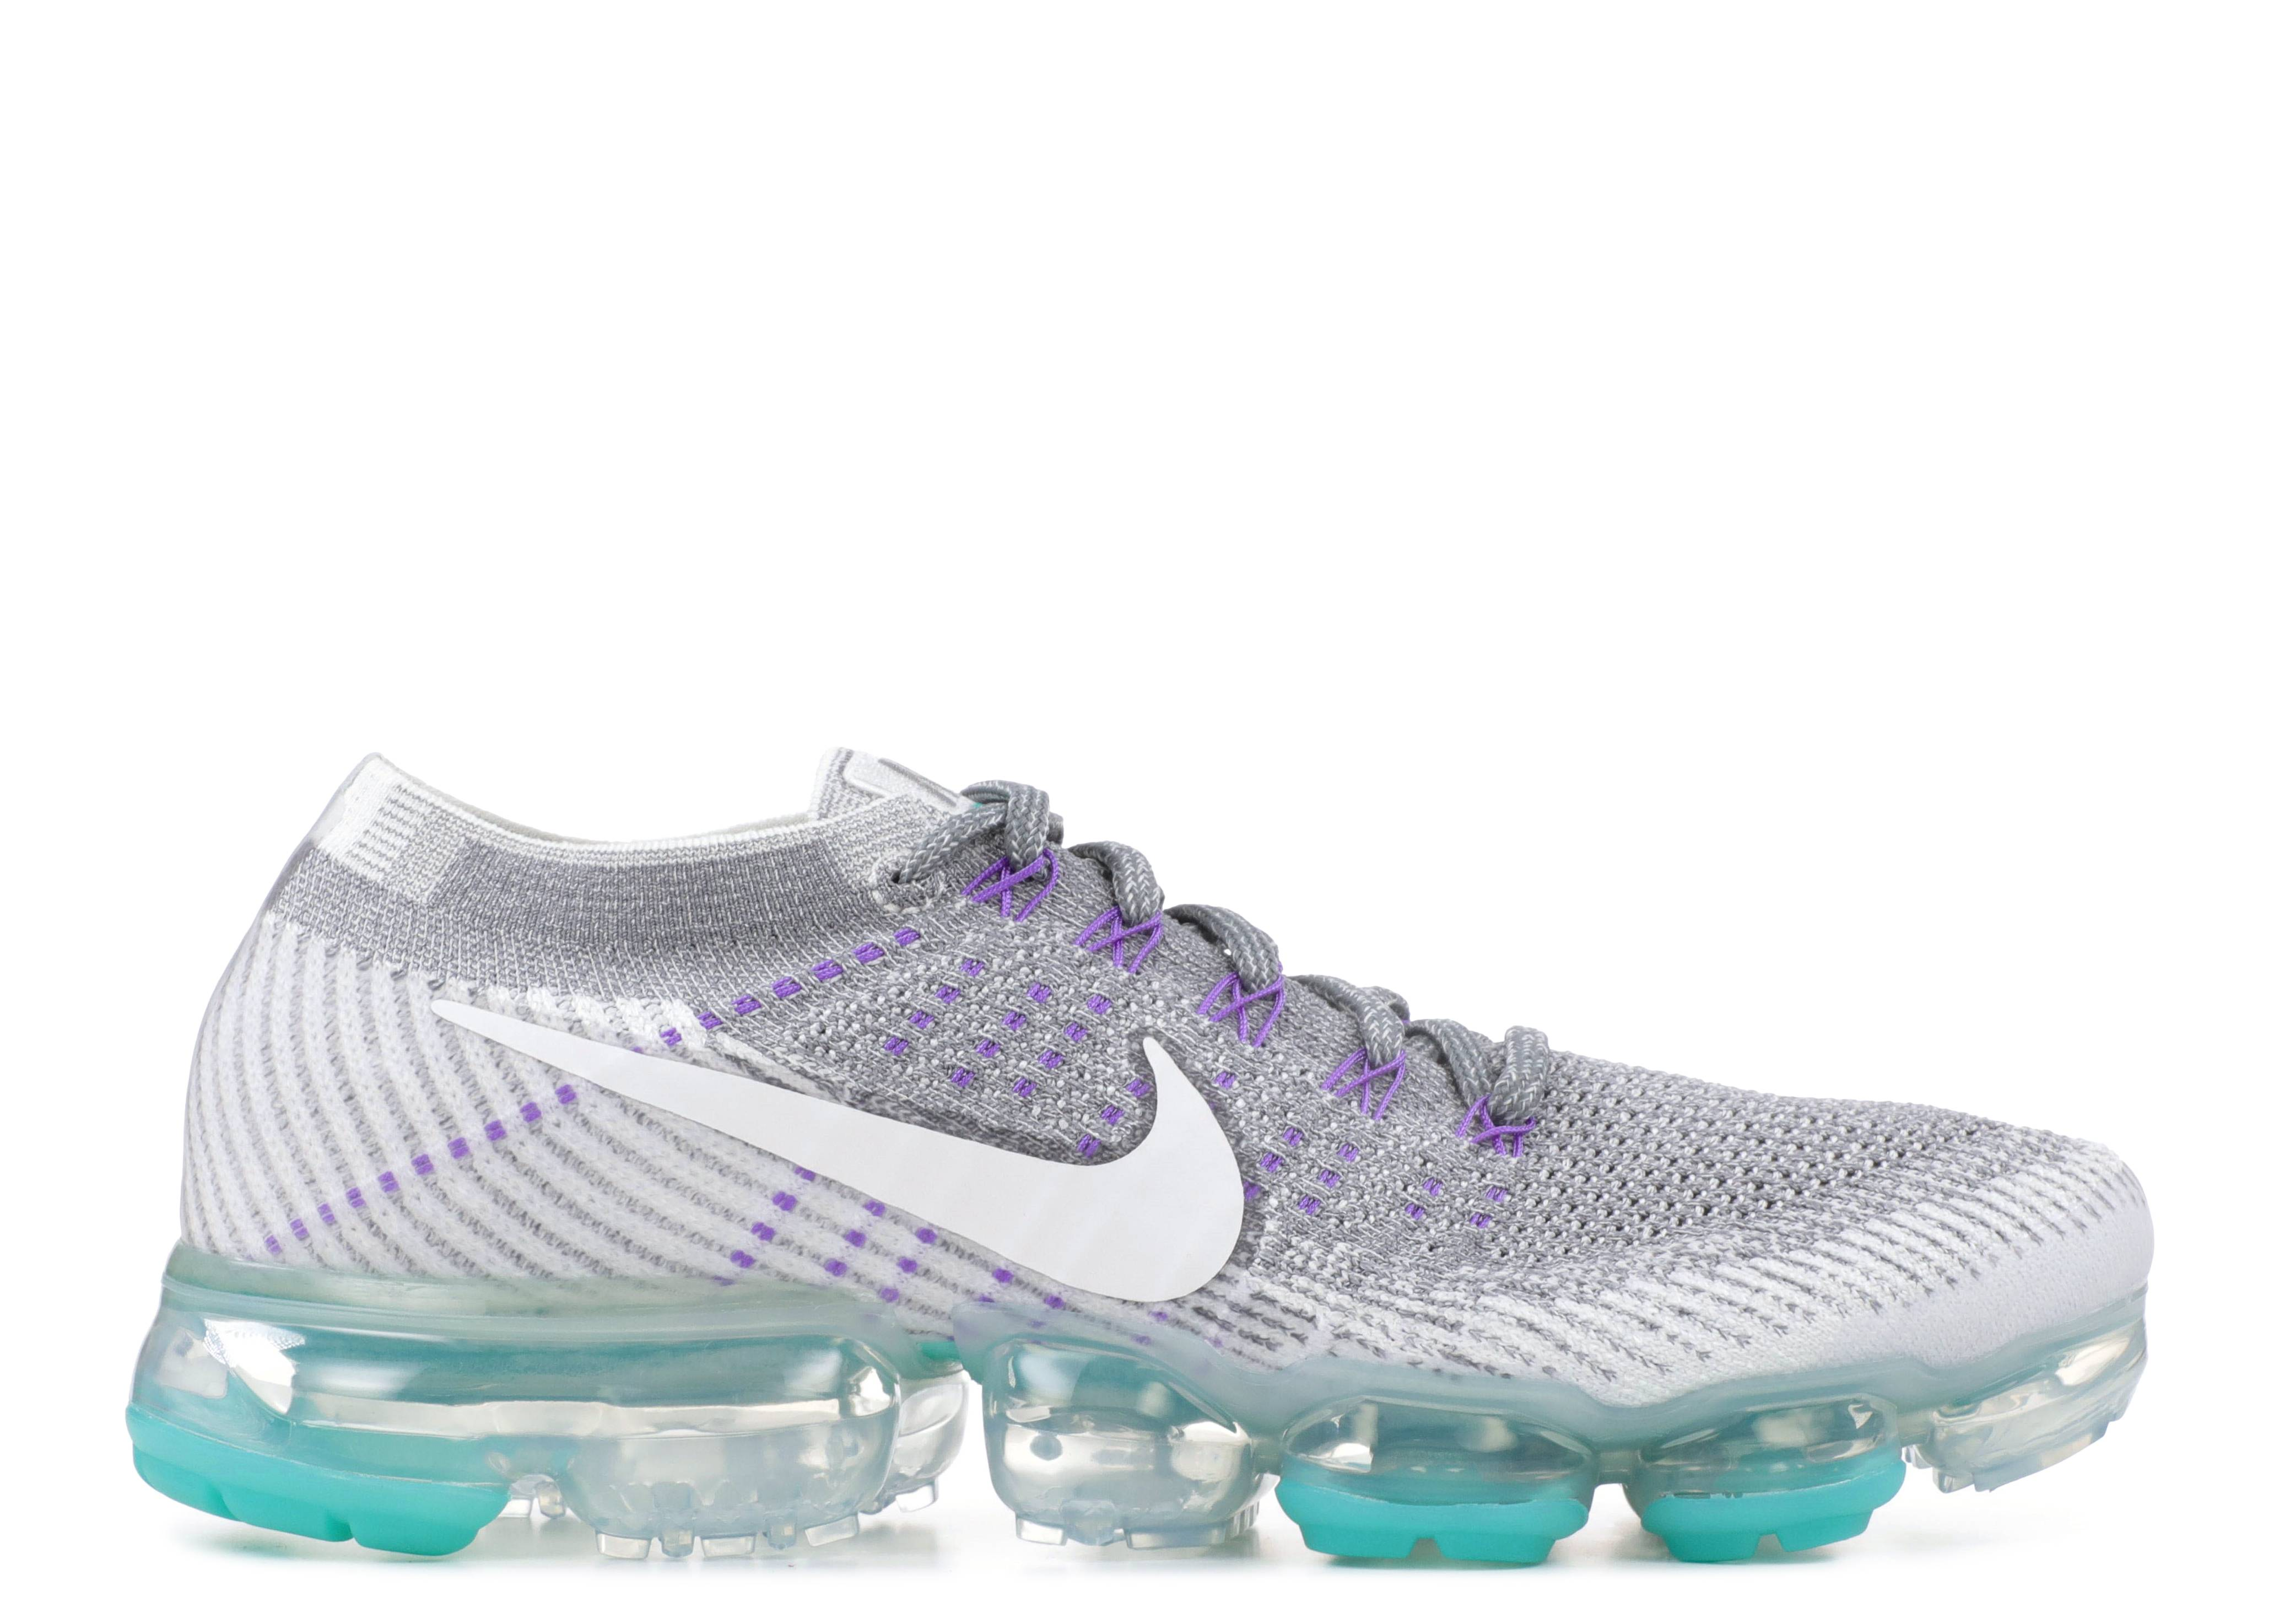 bc9eedc6c8 Wmns Nike Air Vapormax Flyknit - Nike - 922914 002 - cool grey/white ...